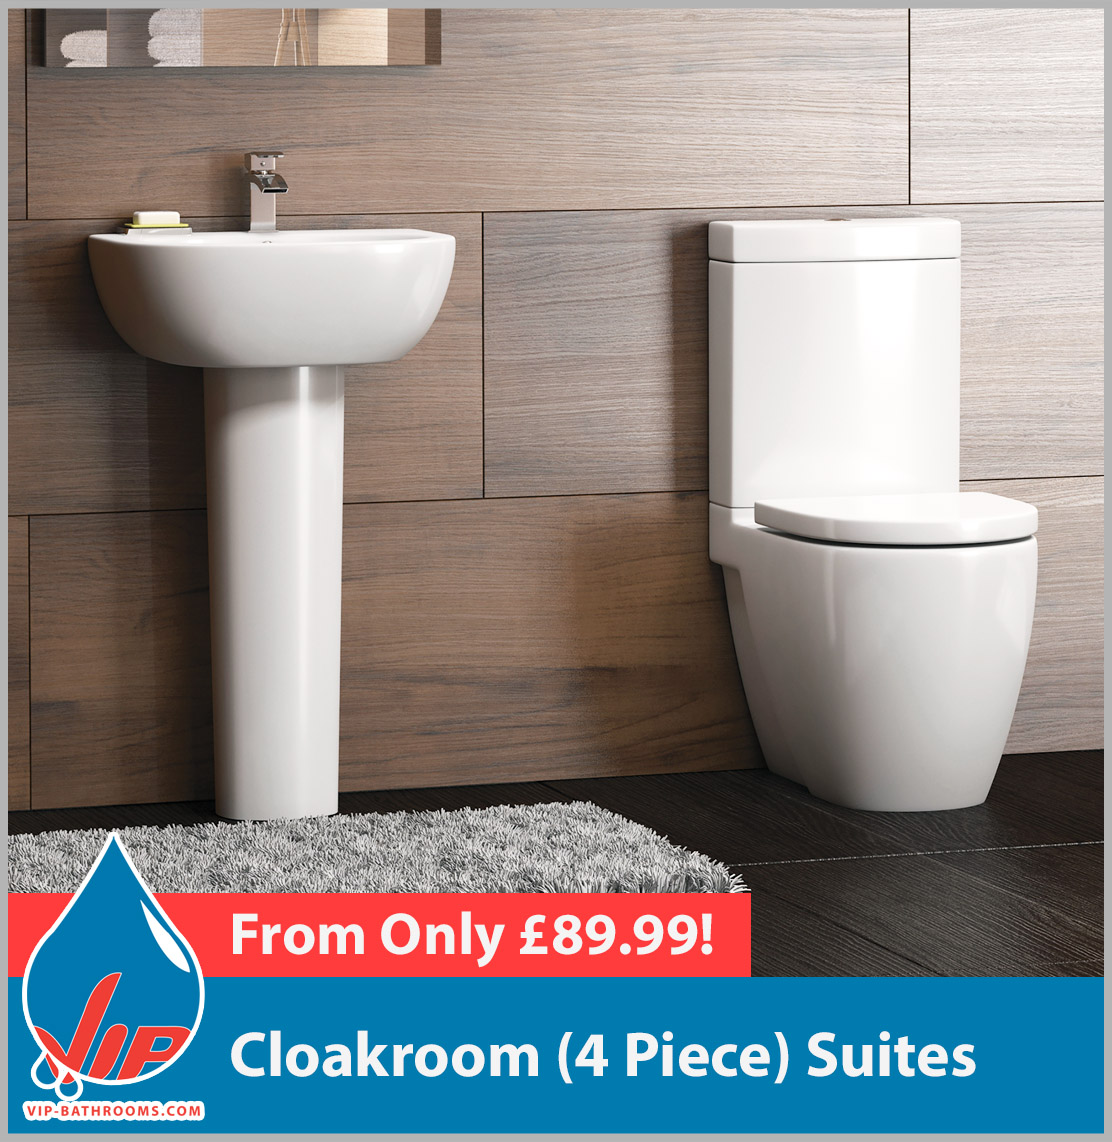 Click here to view our range of superb Four Piece Toilet & Basin Cloakroom Suites